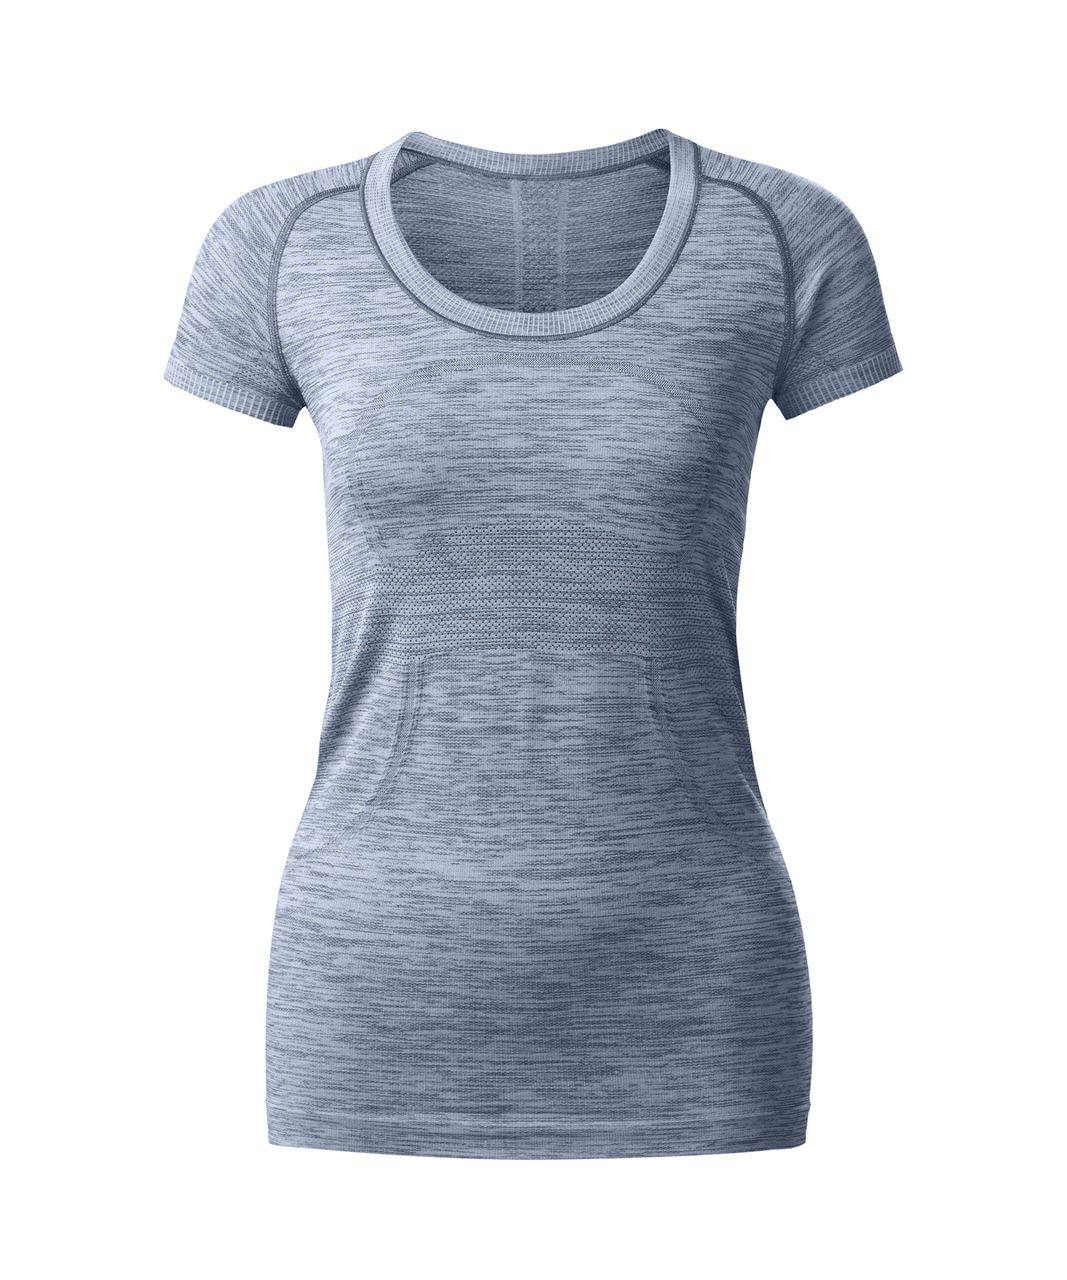 Lululemon Swiftly Tech Short Sleeve Scoop - Heathered Hero Blue